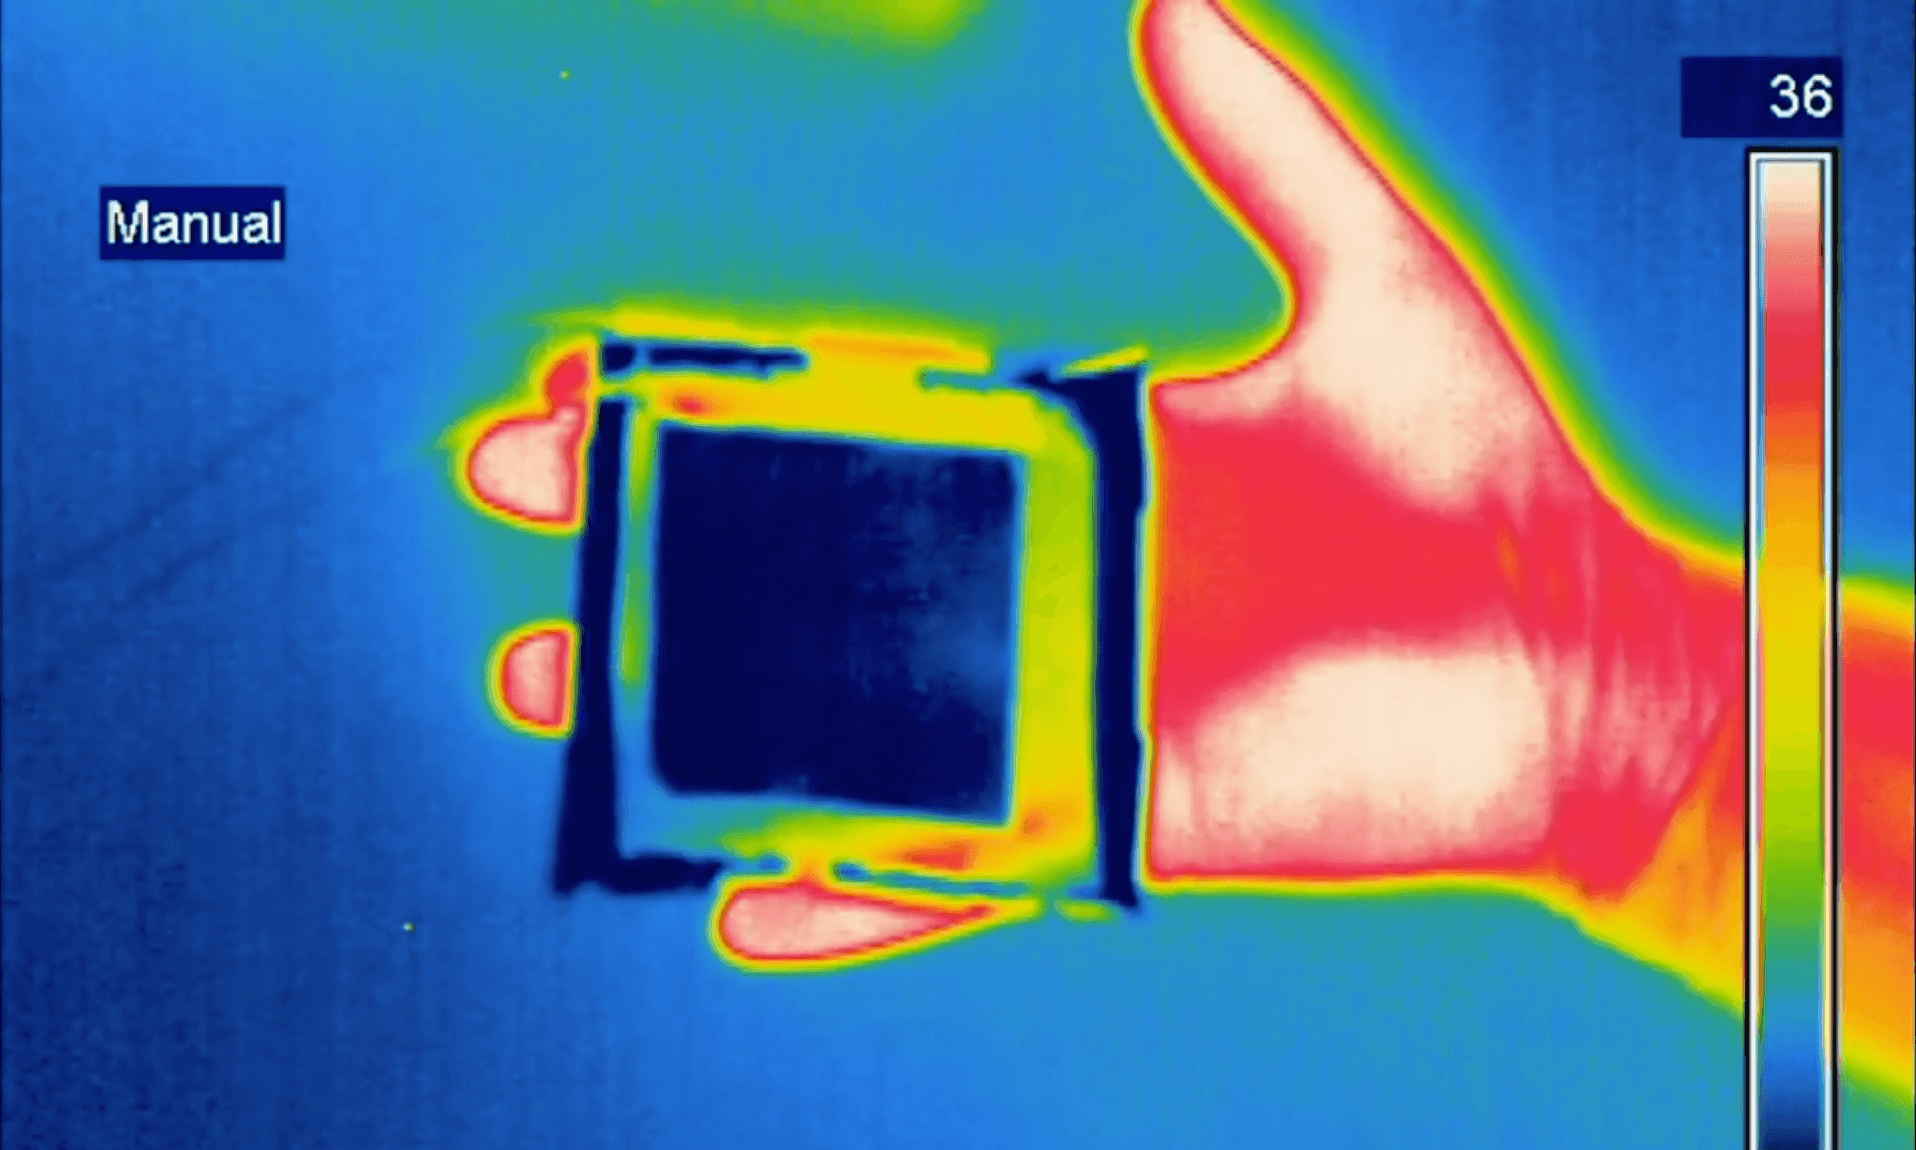 Scientists develop thermal camouflage that can fool infrared cameras